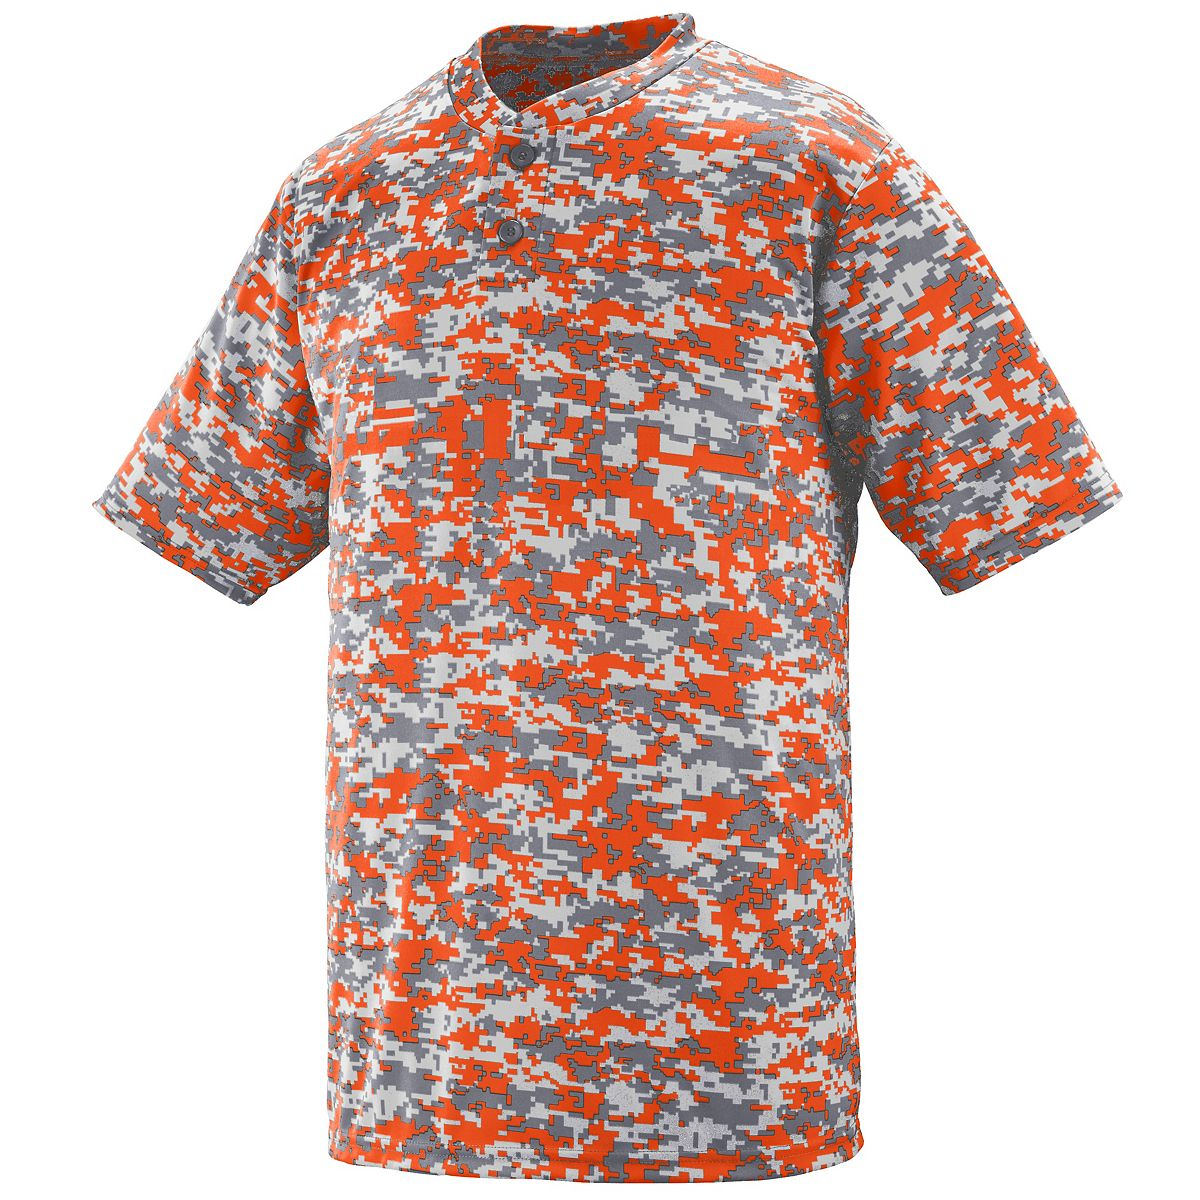 Augusta Digi Camo Wicking Two-Btn Jrsy Or Digi L - image 1 de 1